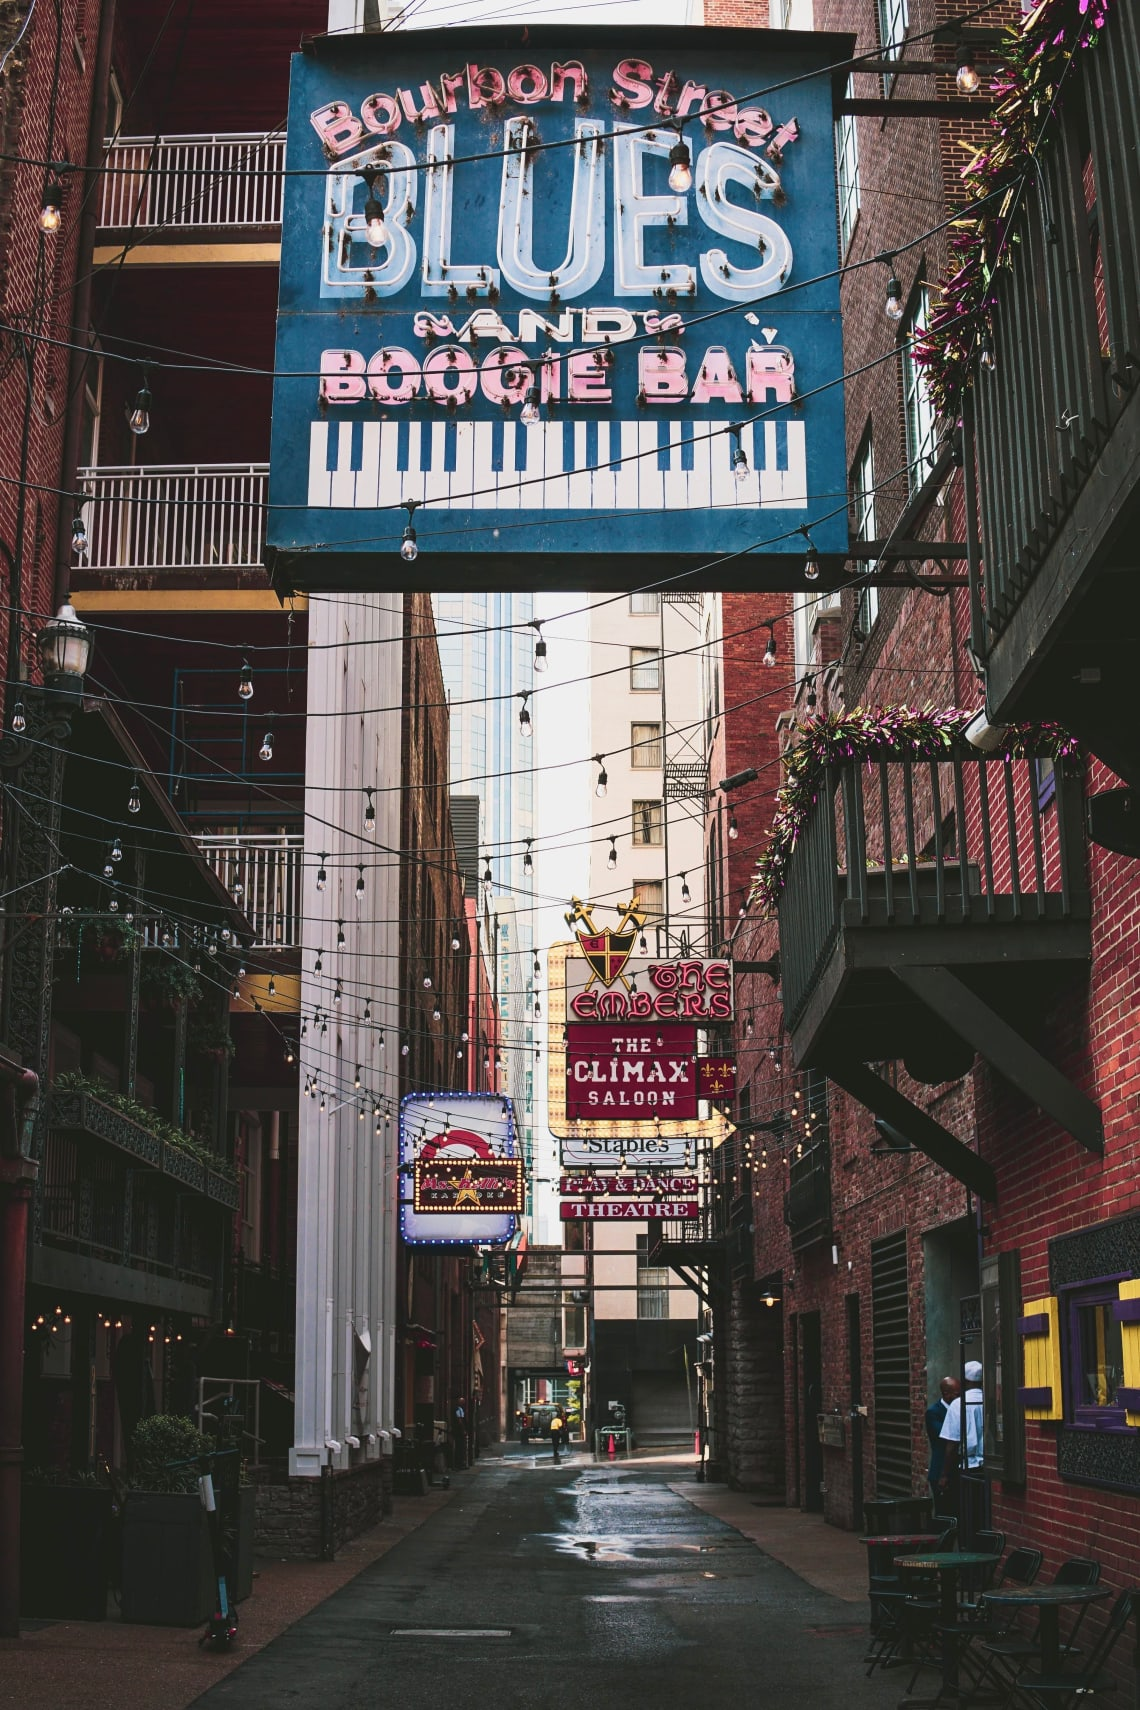 Bars and venues in downtown Nashville, Tennessee, United States